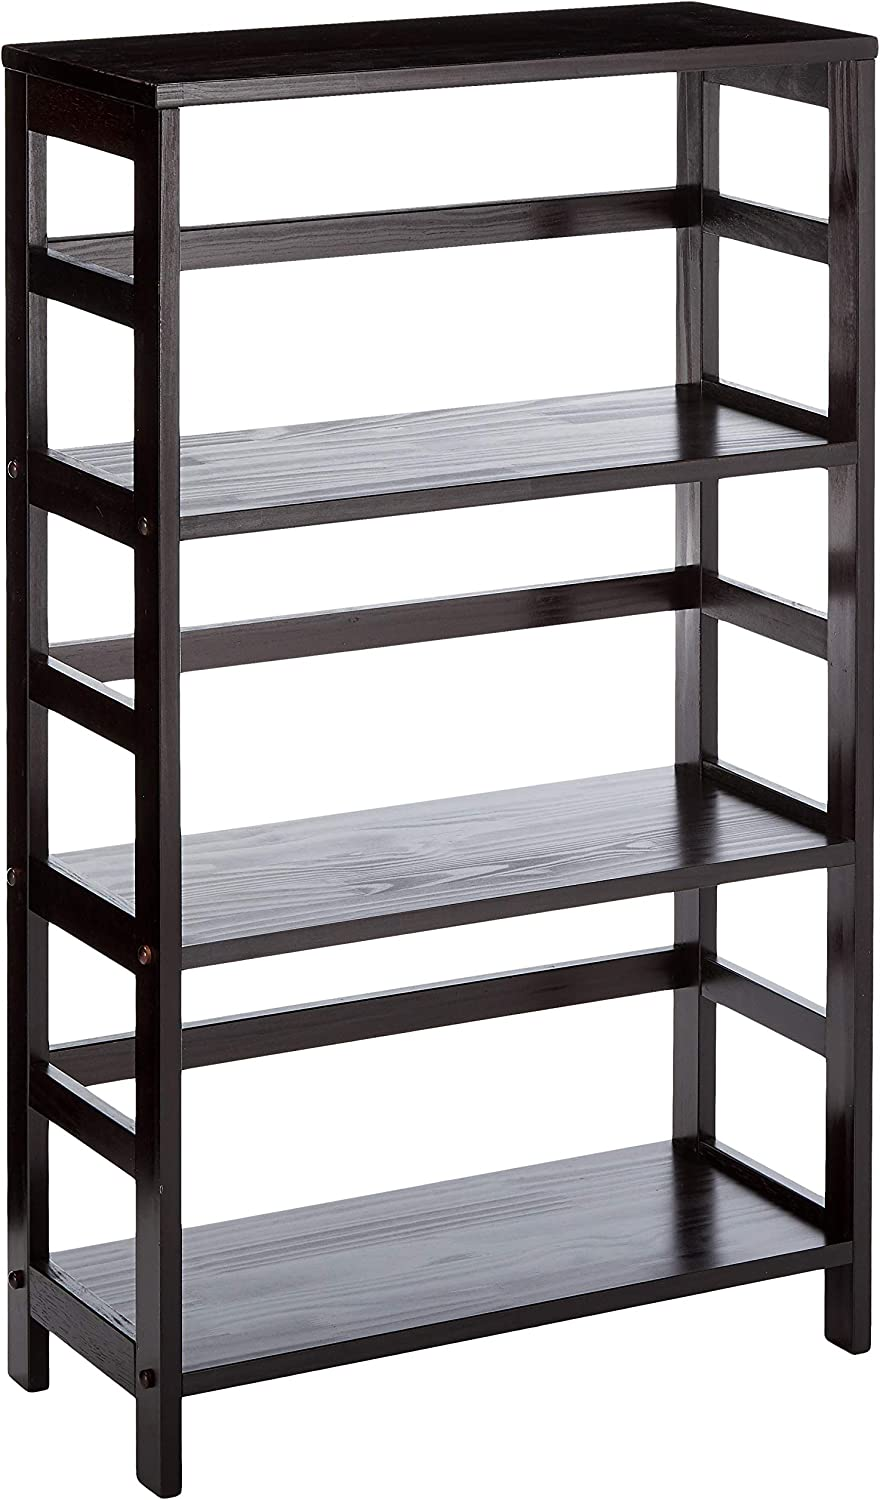 Winsome Wood 92425 Leo Model Name Shelving, Small, Espresso